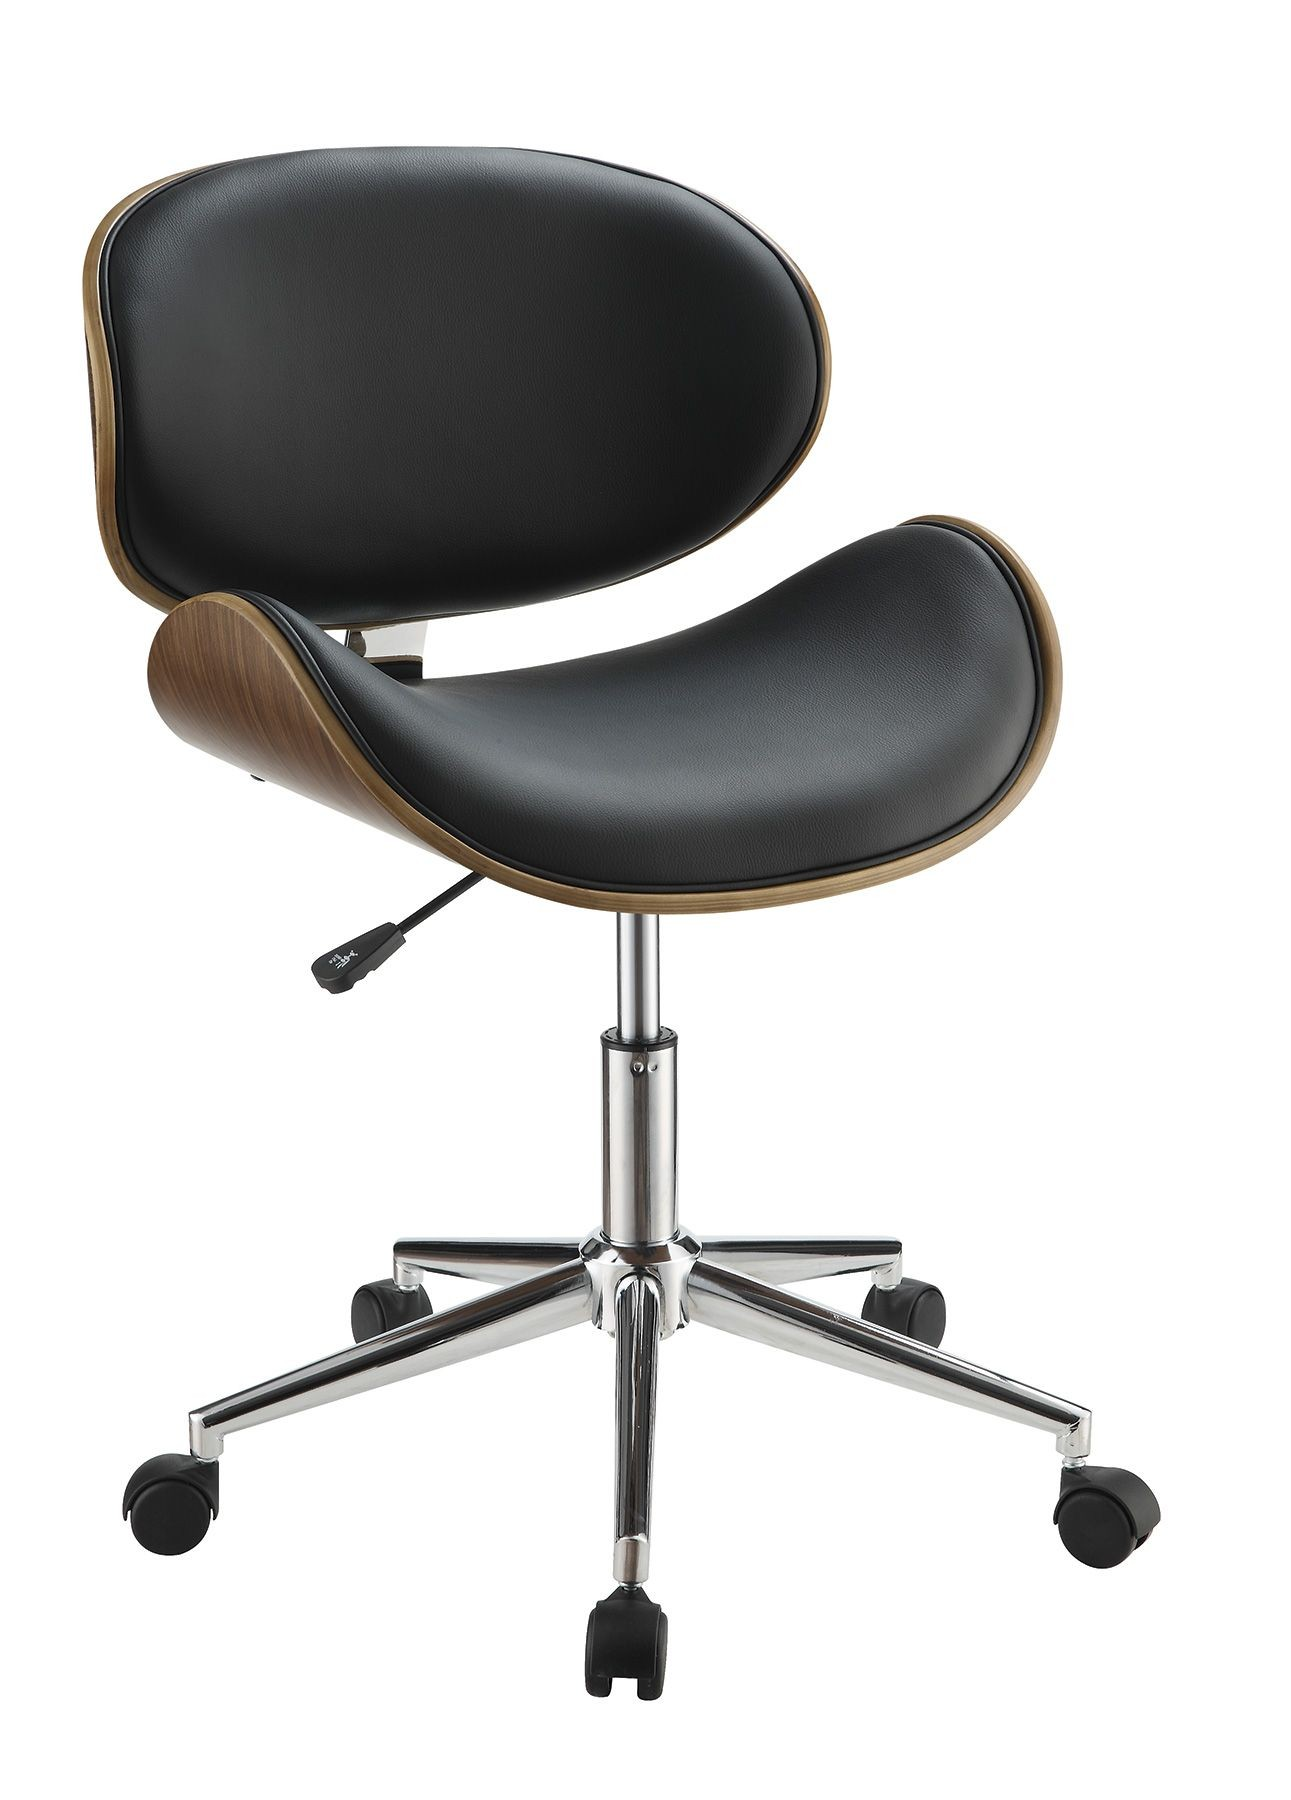 800614 Black Office Chair From Coaster 800614 Coleman